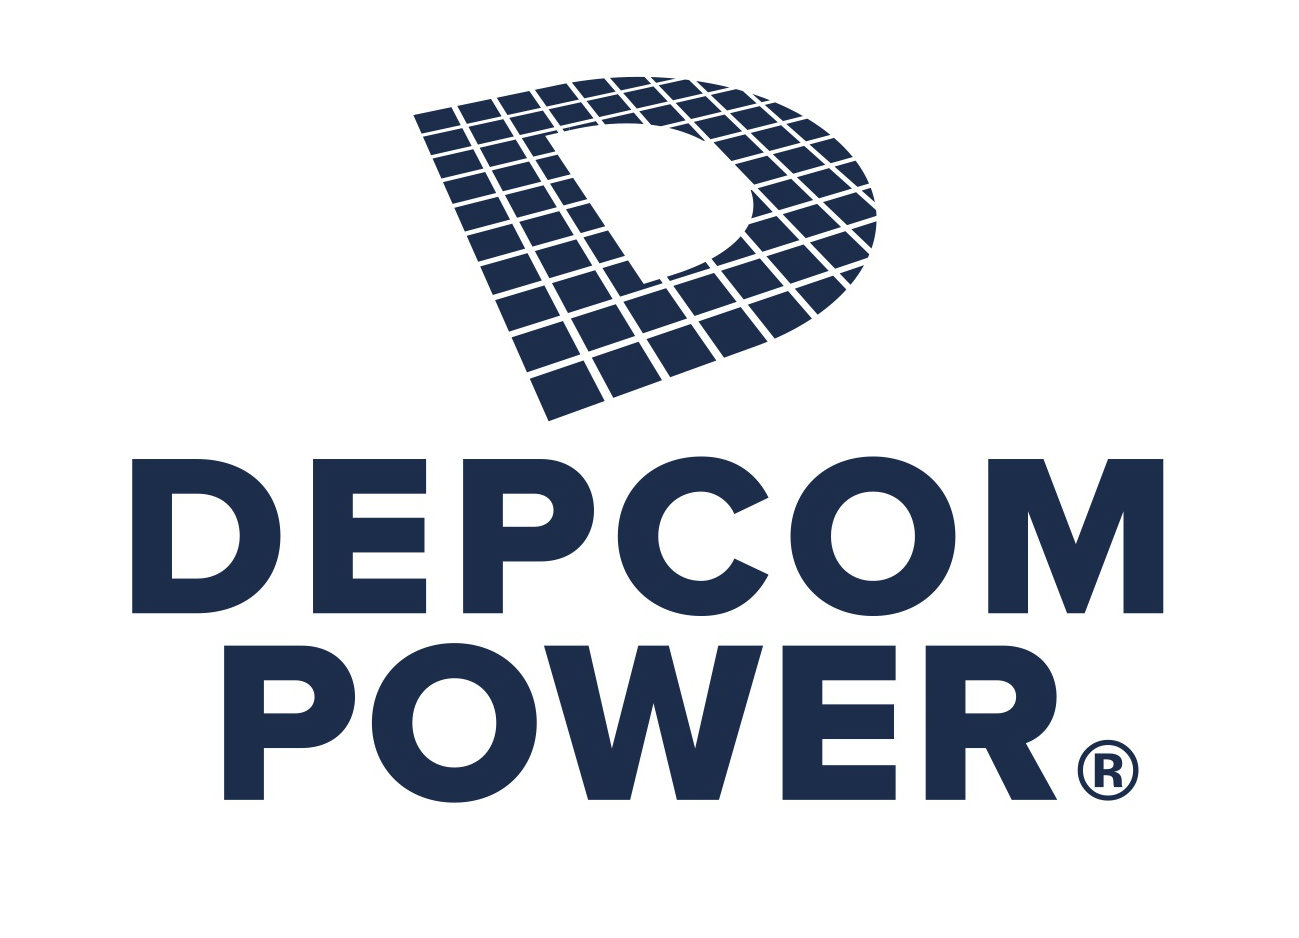 Depcom Power logo